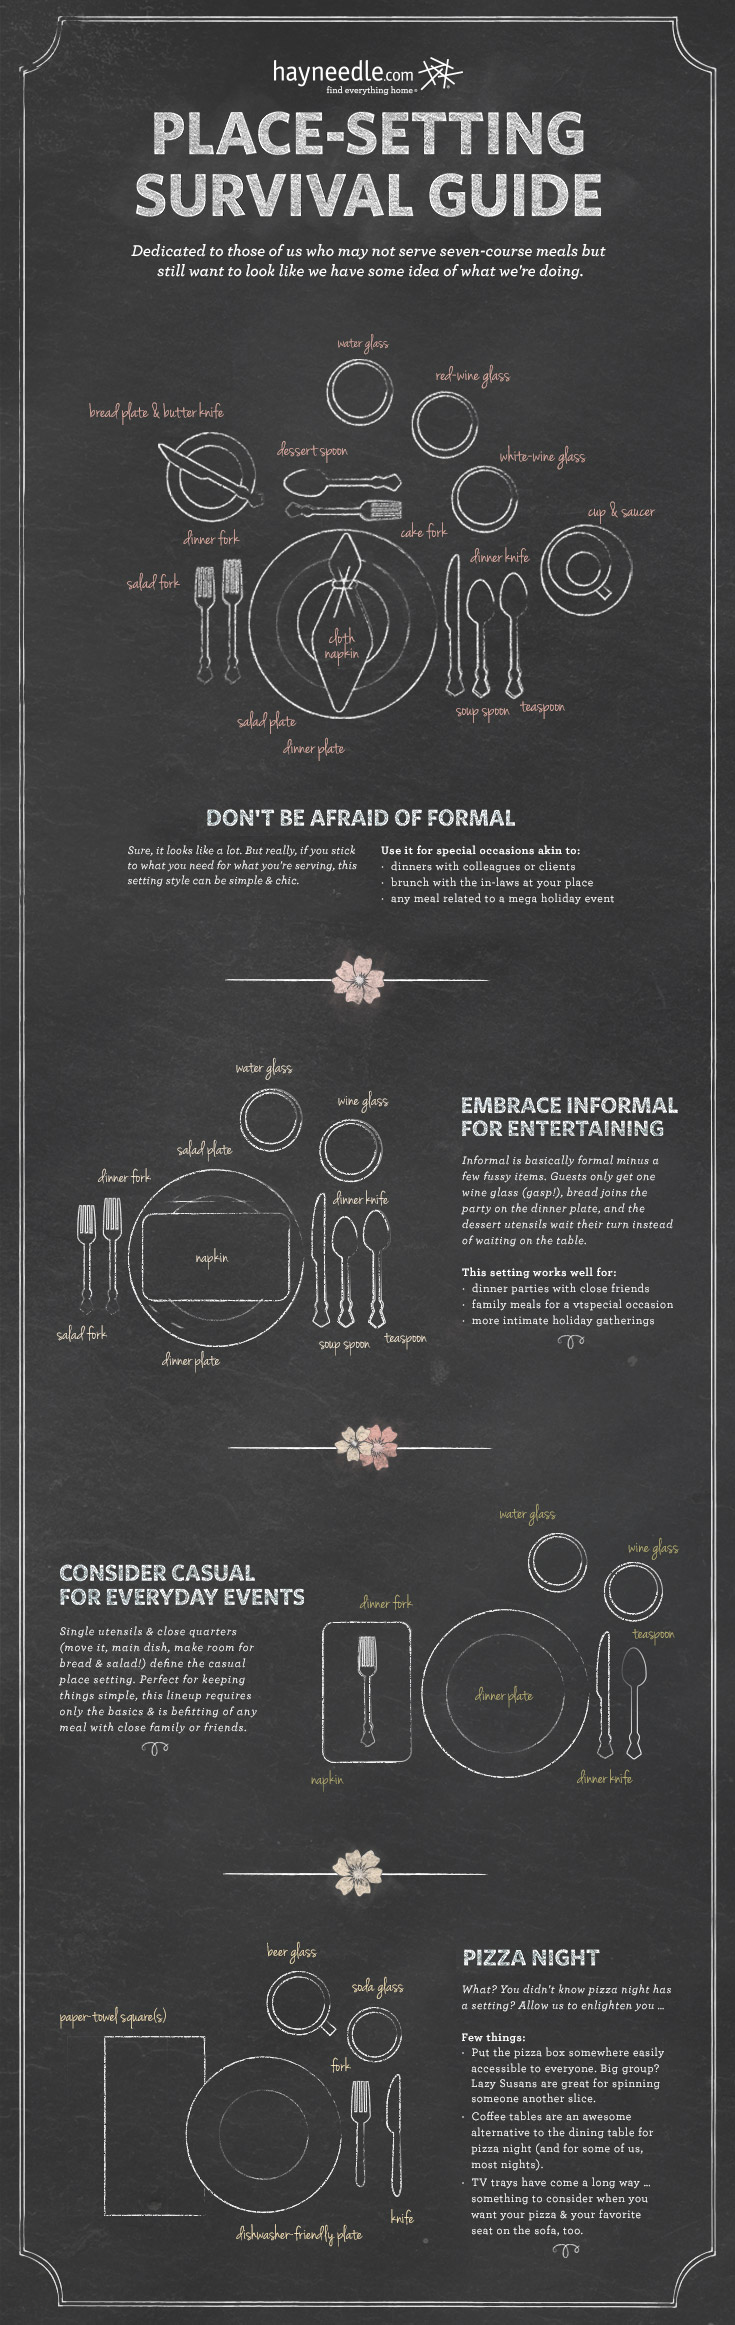 Formal and Informal Place Settings for the Holidays